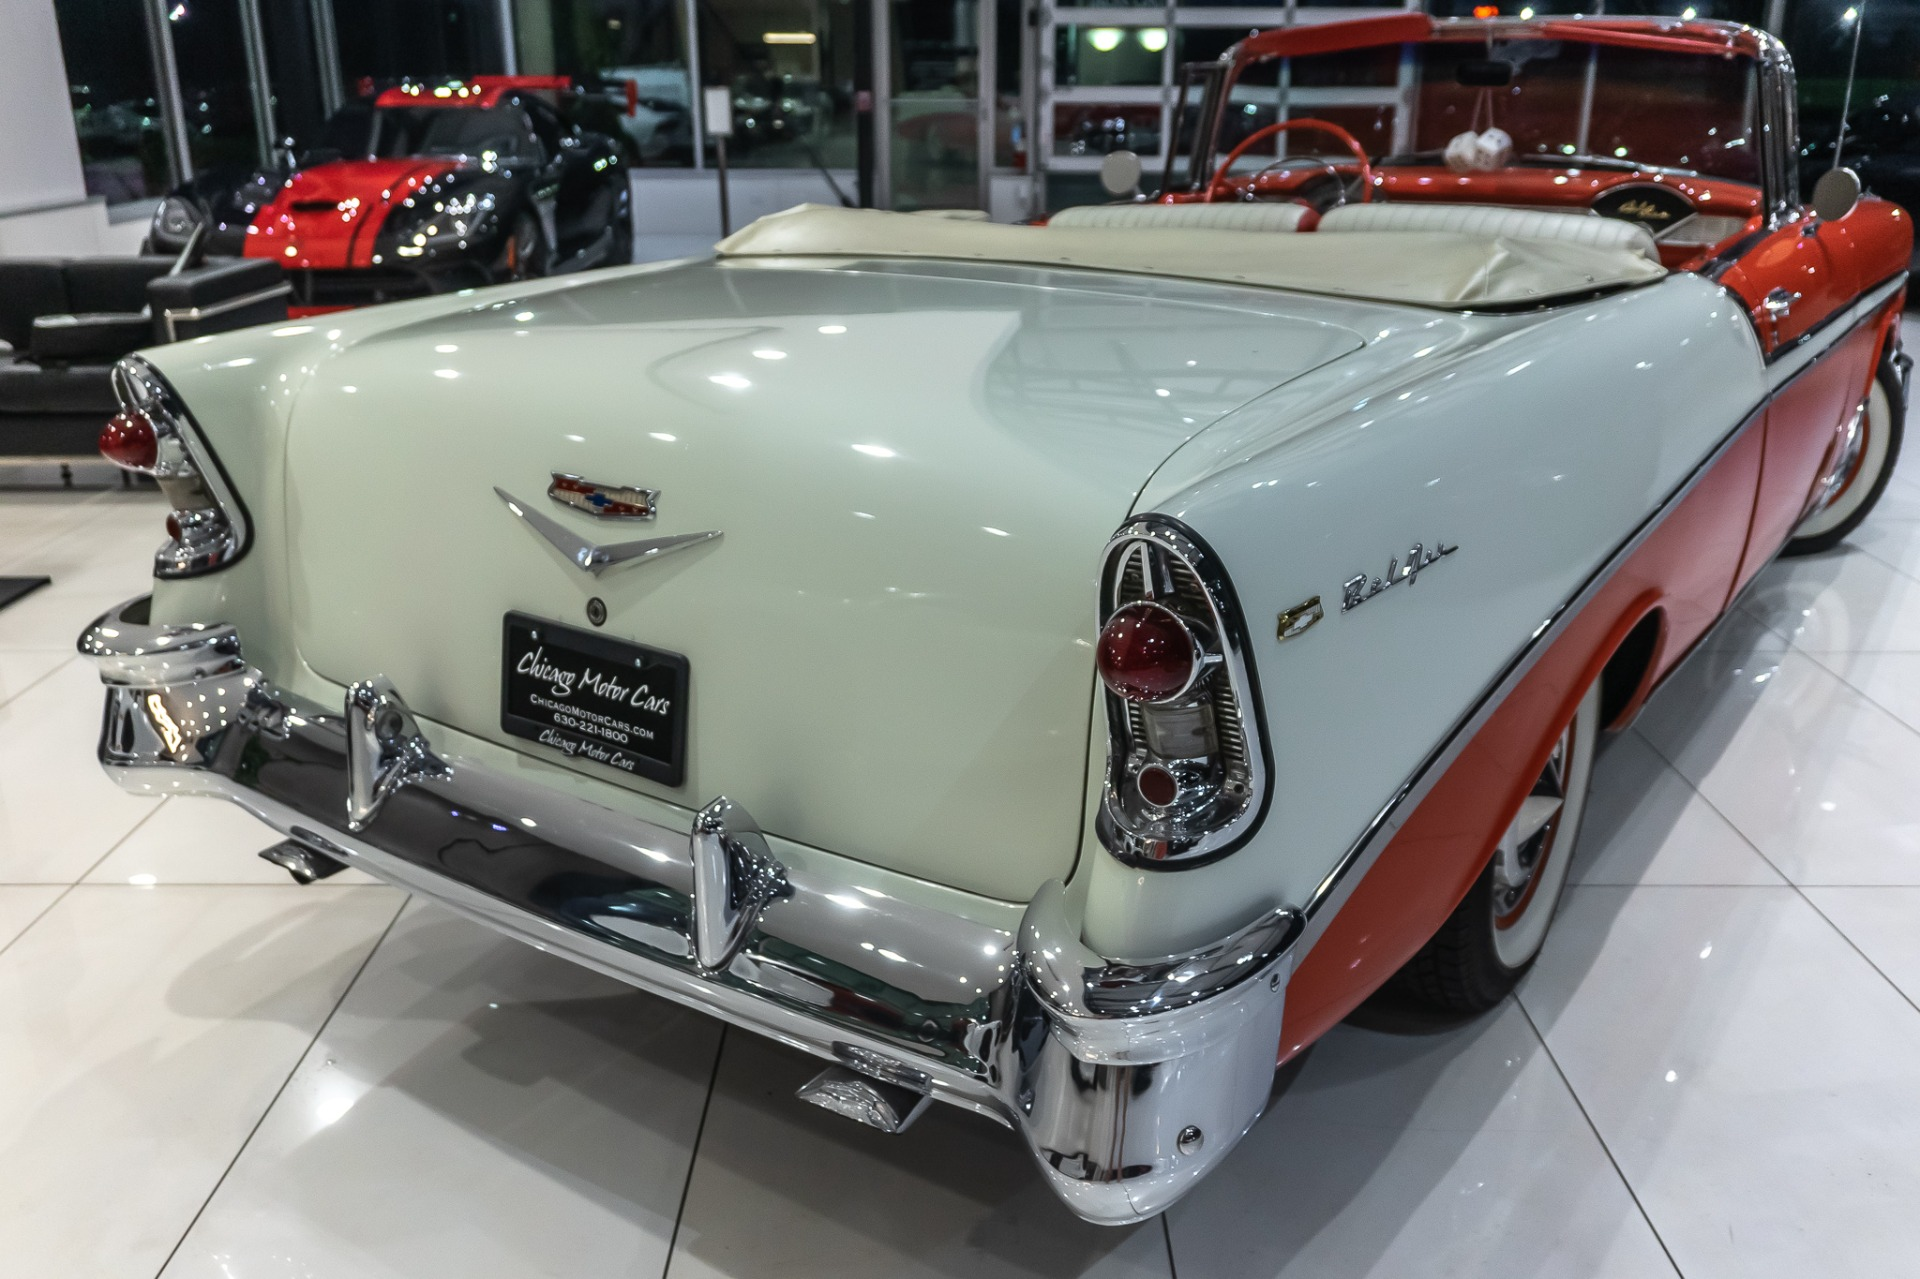 Used-1956-Chevrolet-BelAir-Convertible-Ground-Up-Restoration-265-V8-POWER-TOP